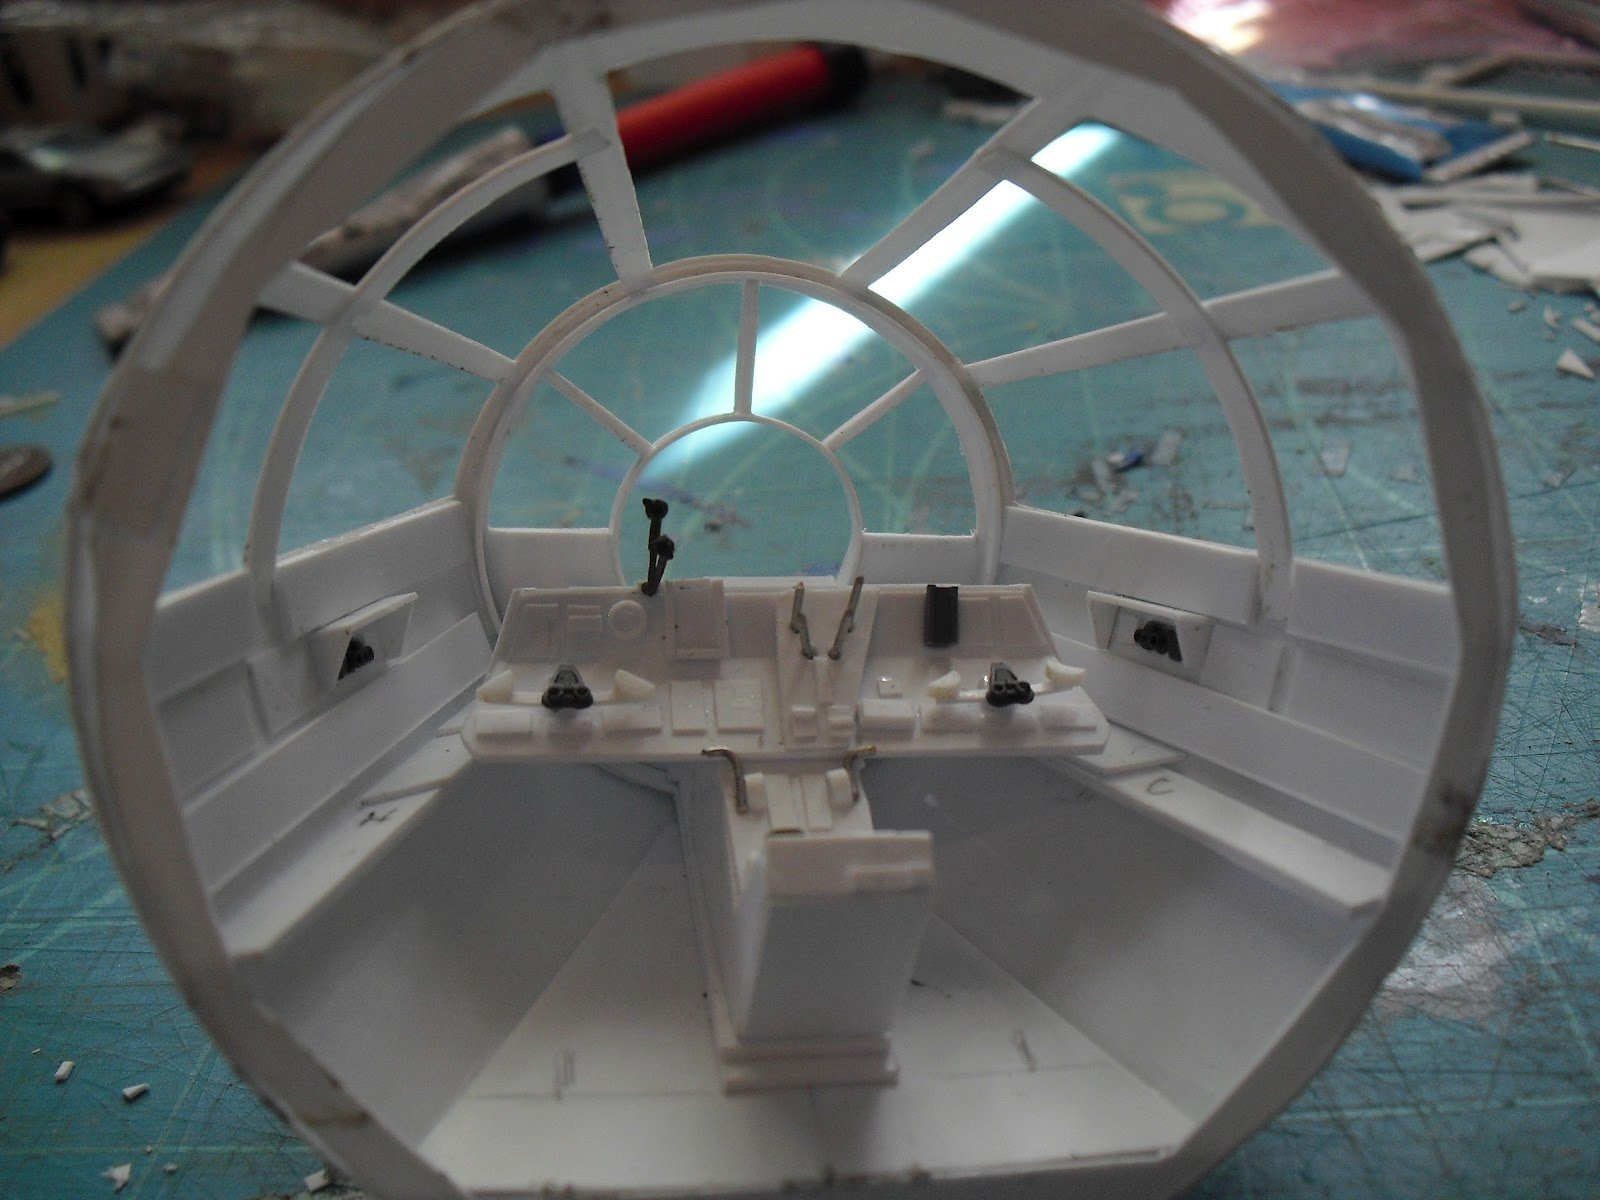 related millenium falcon cockpit hyperspace millenium falcon cockpit ...